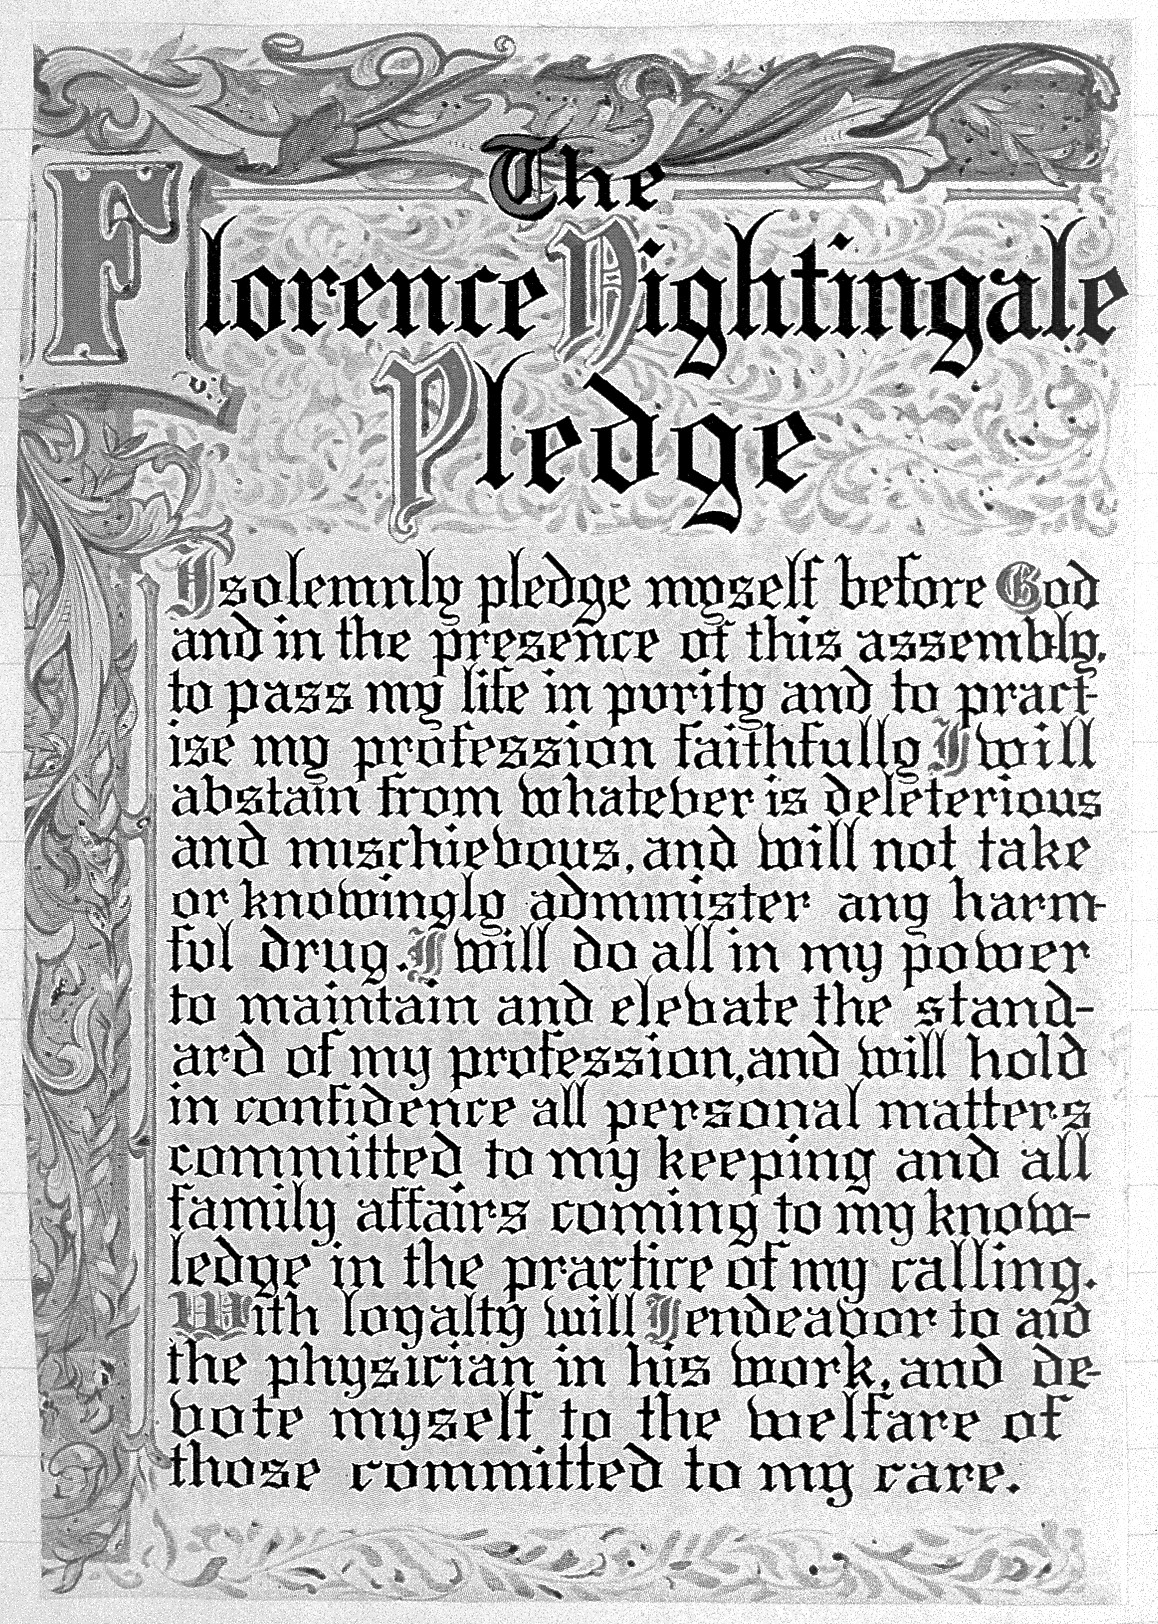 nightingale pledge